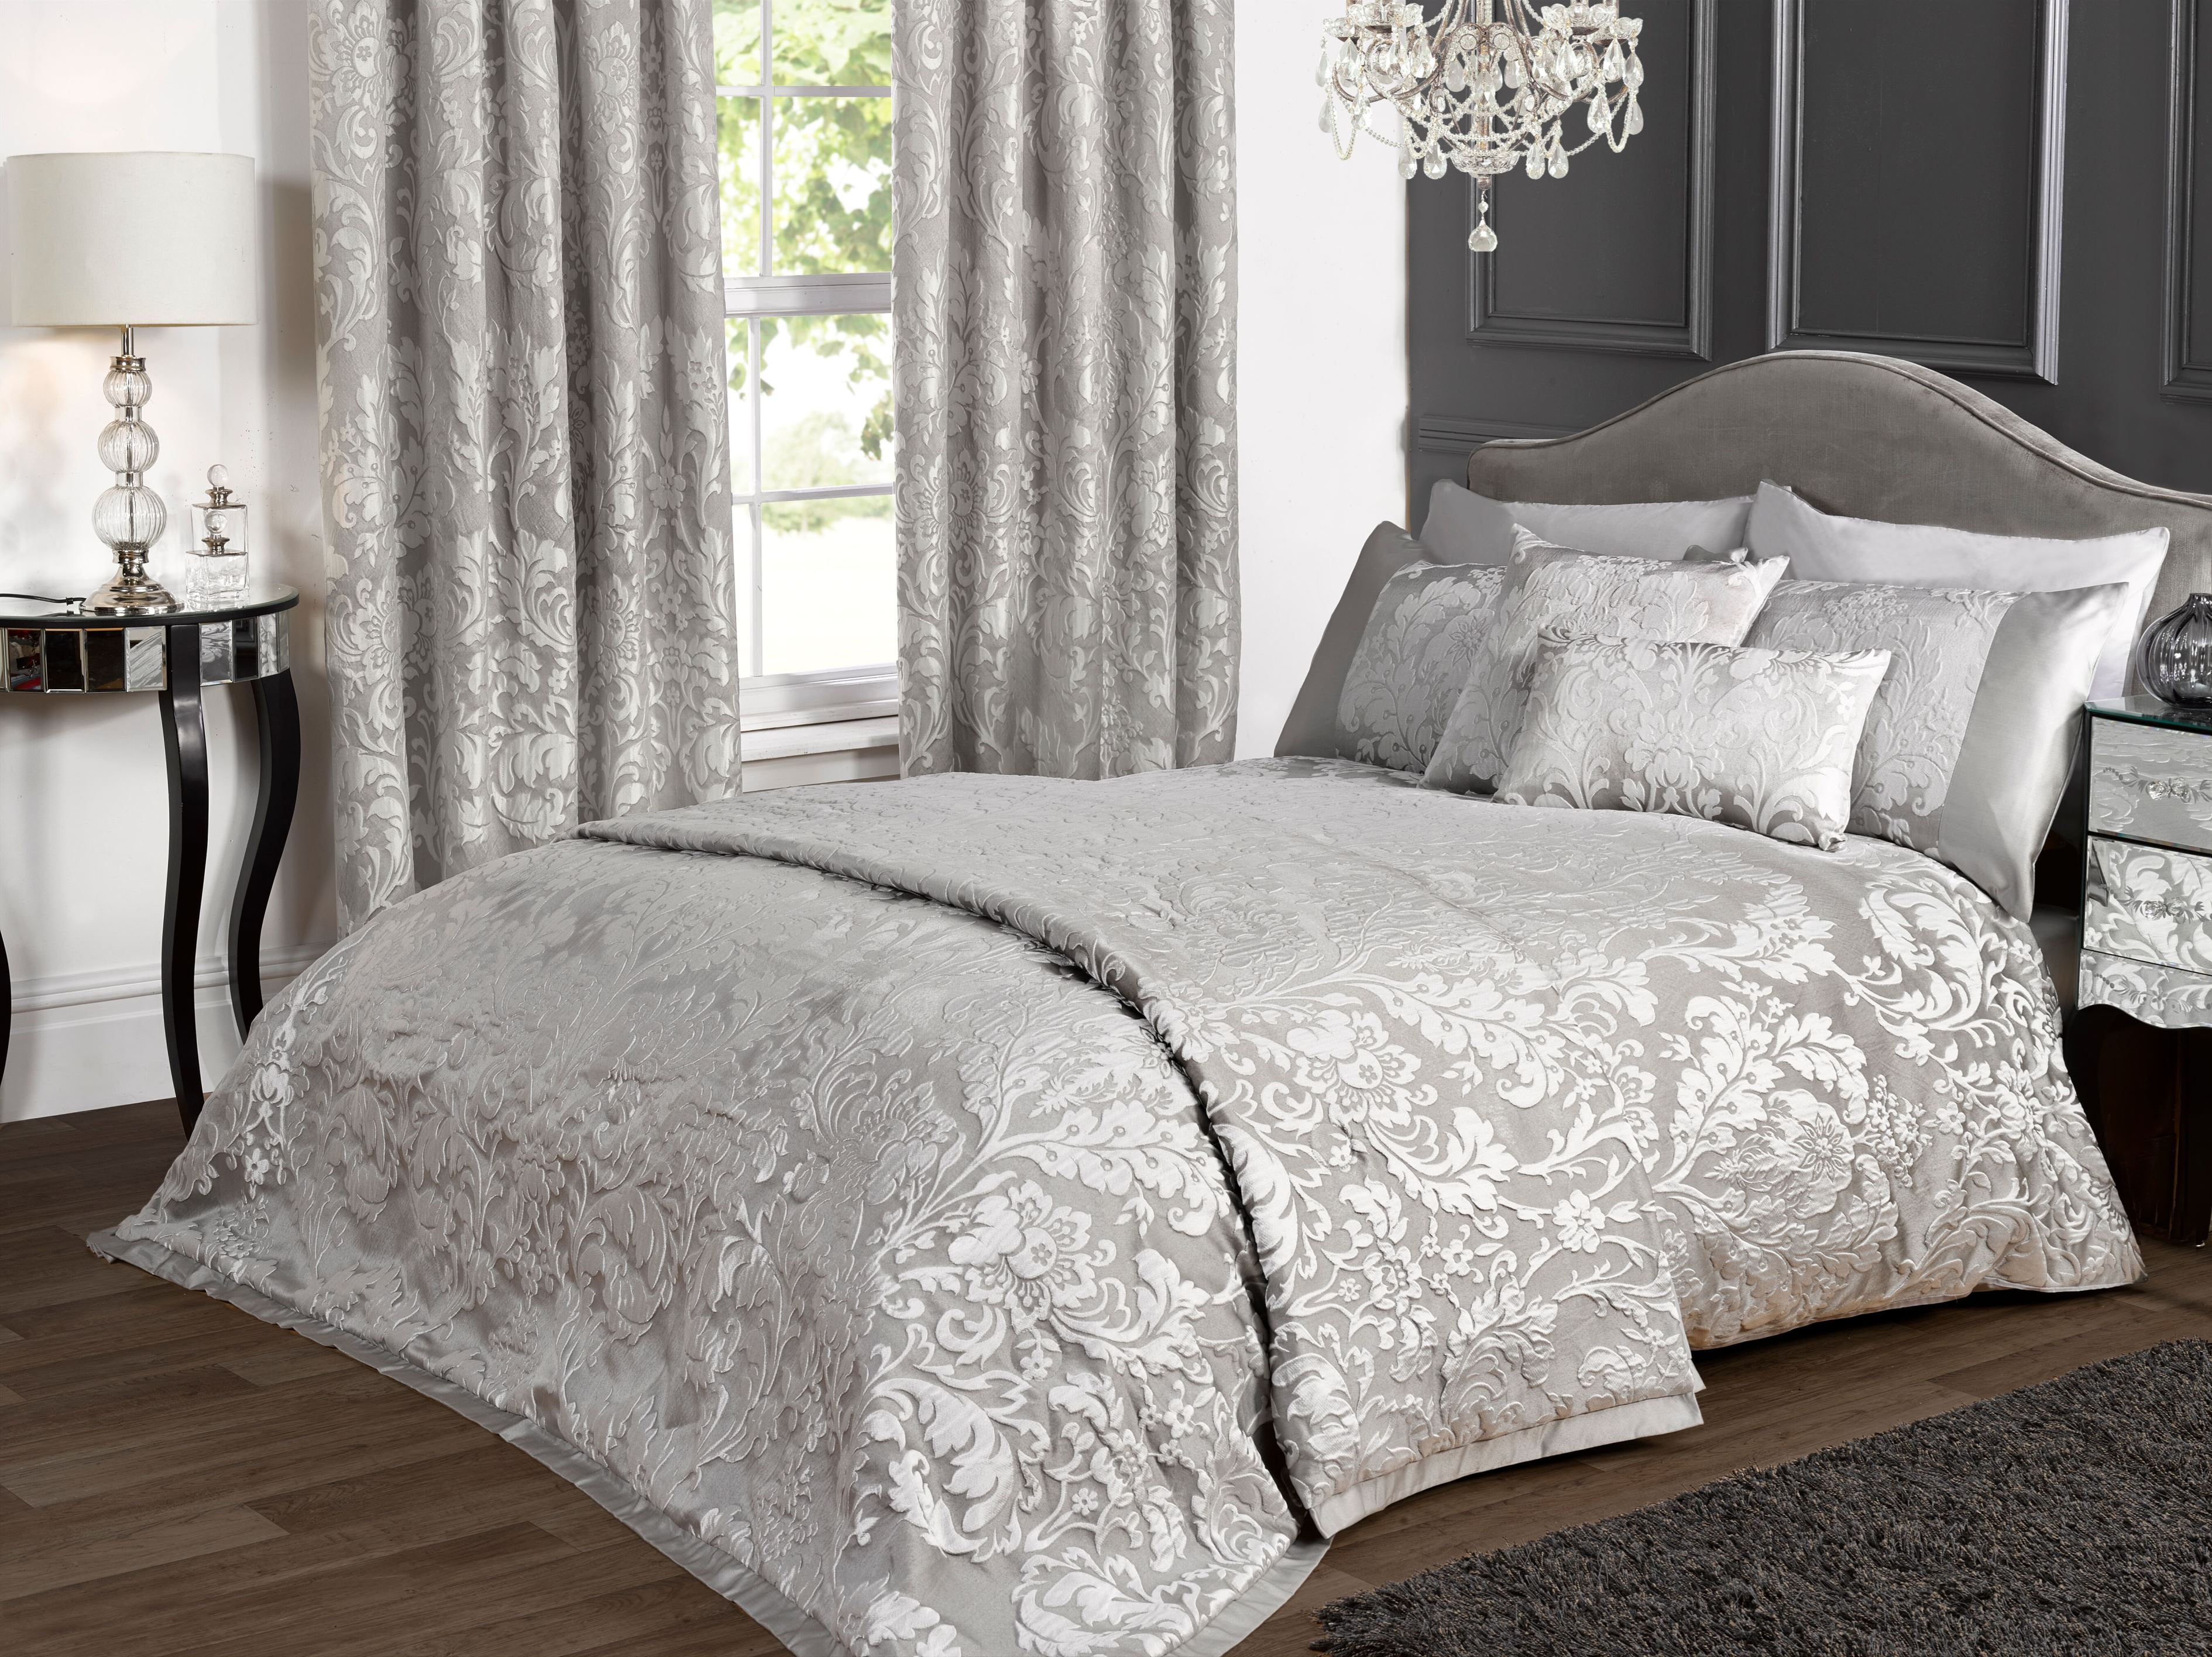 kliving luxury charleston grey jacquard embossted bedding set  - kliving luxury charleston grey jacquard embossted bedding set modern bedroom